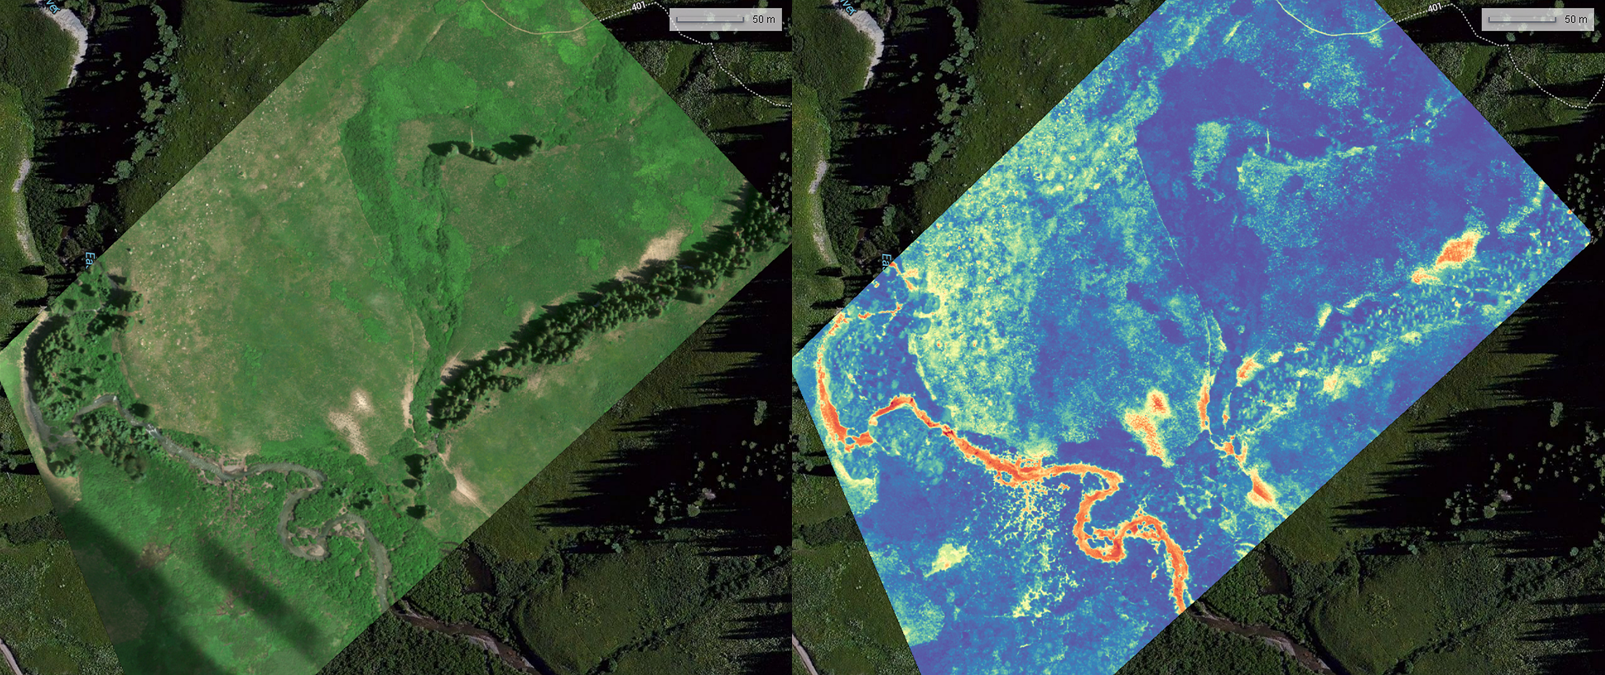 Stitched visual RGB imagery (left) and NDVI (right) within Micasense Atlas web portal.  Red indicates low NDVI (~0) and dark blue represent higher NDVI.